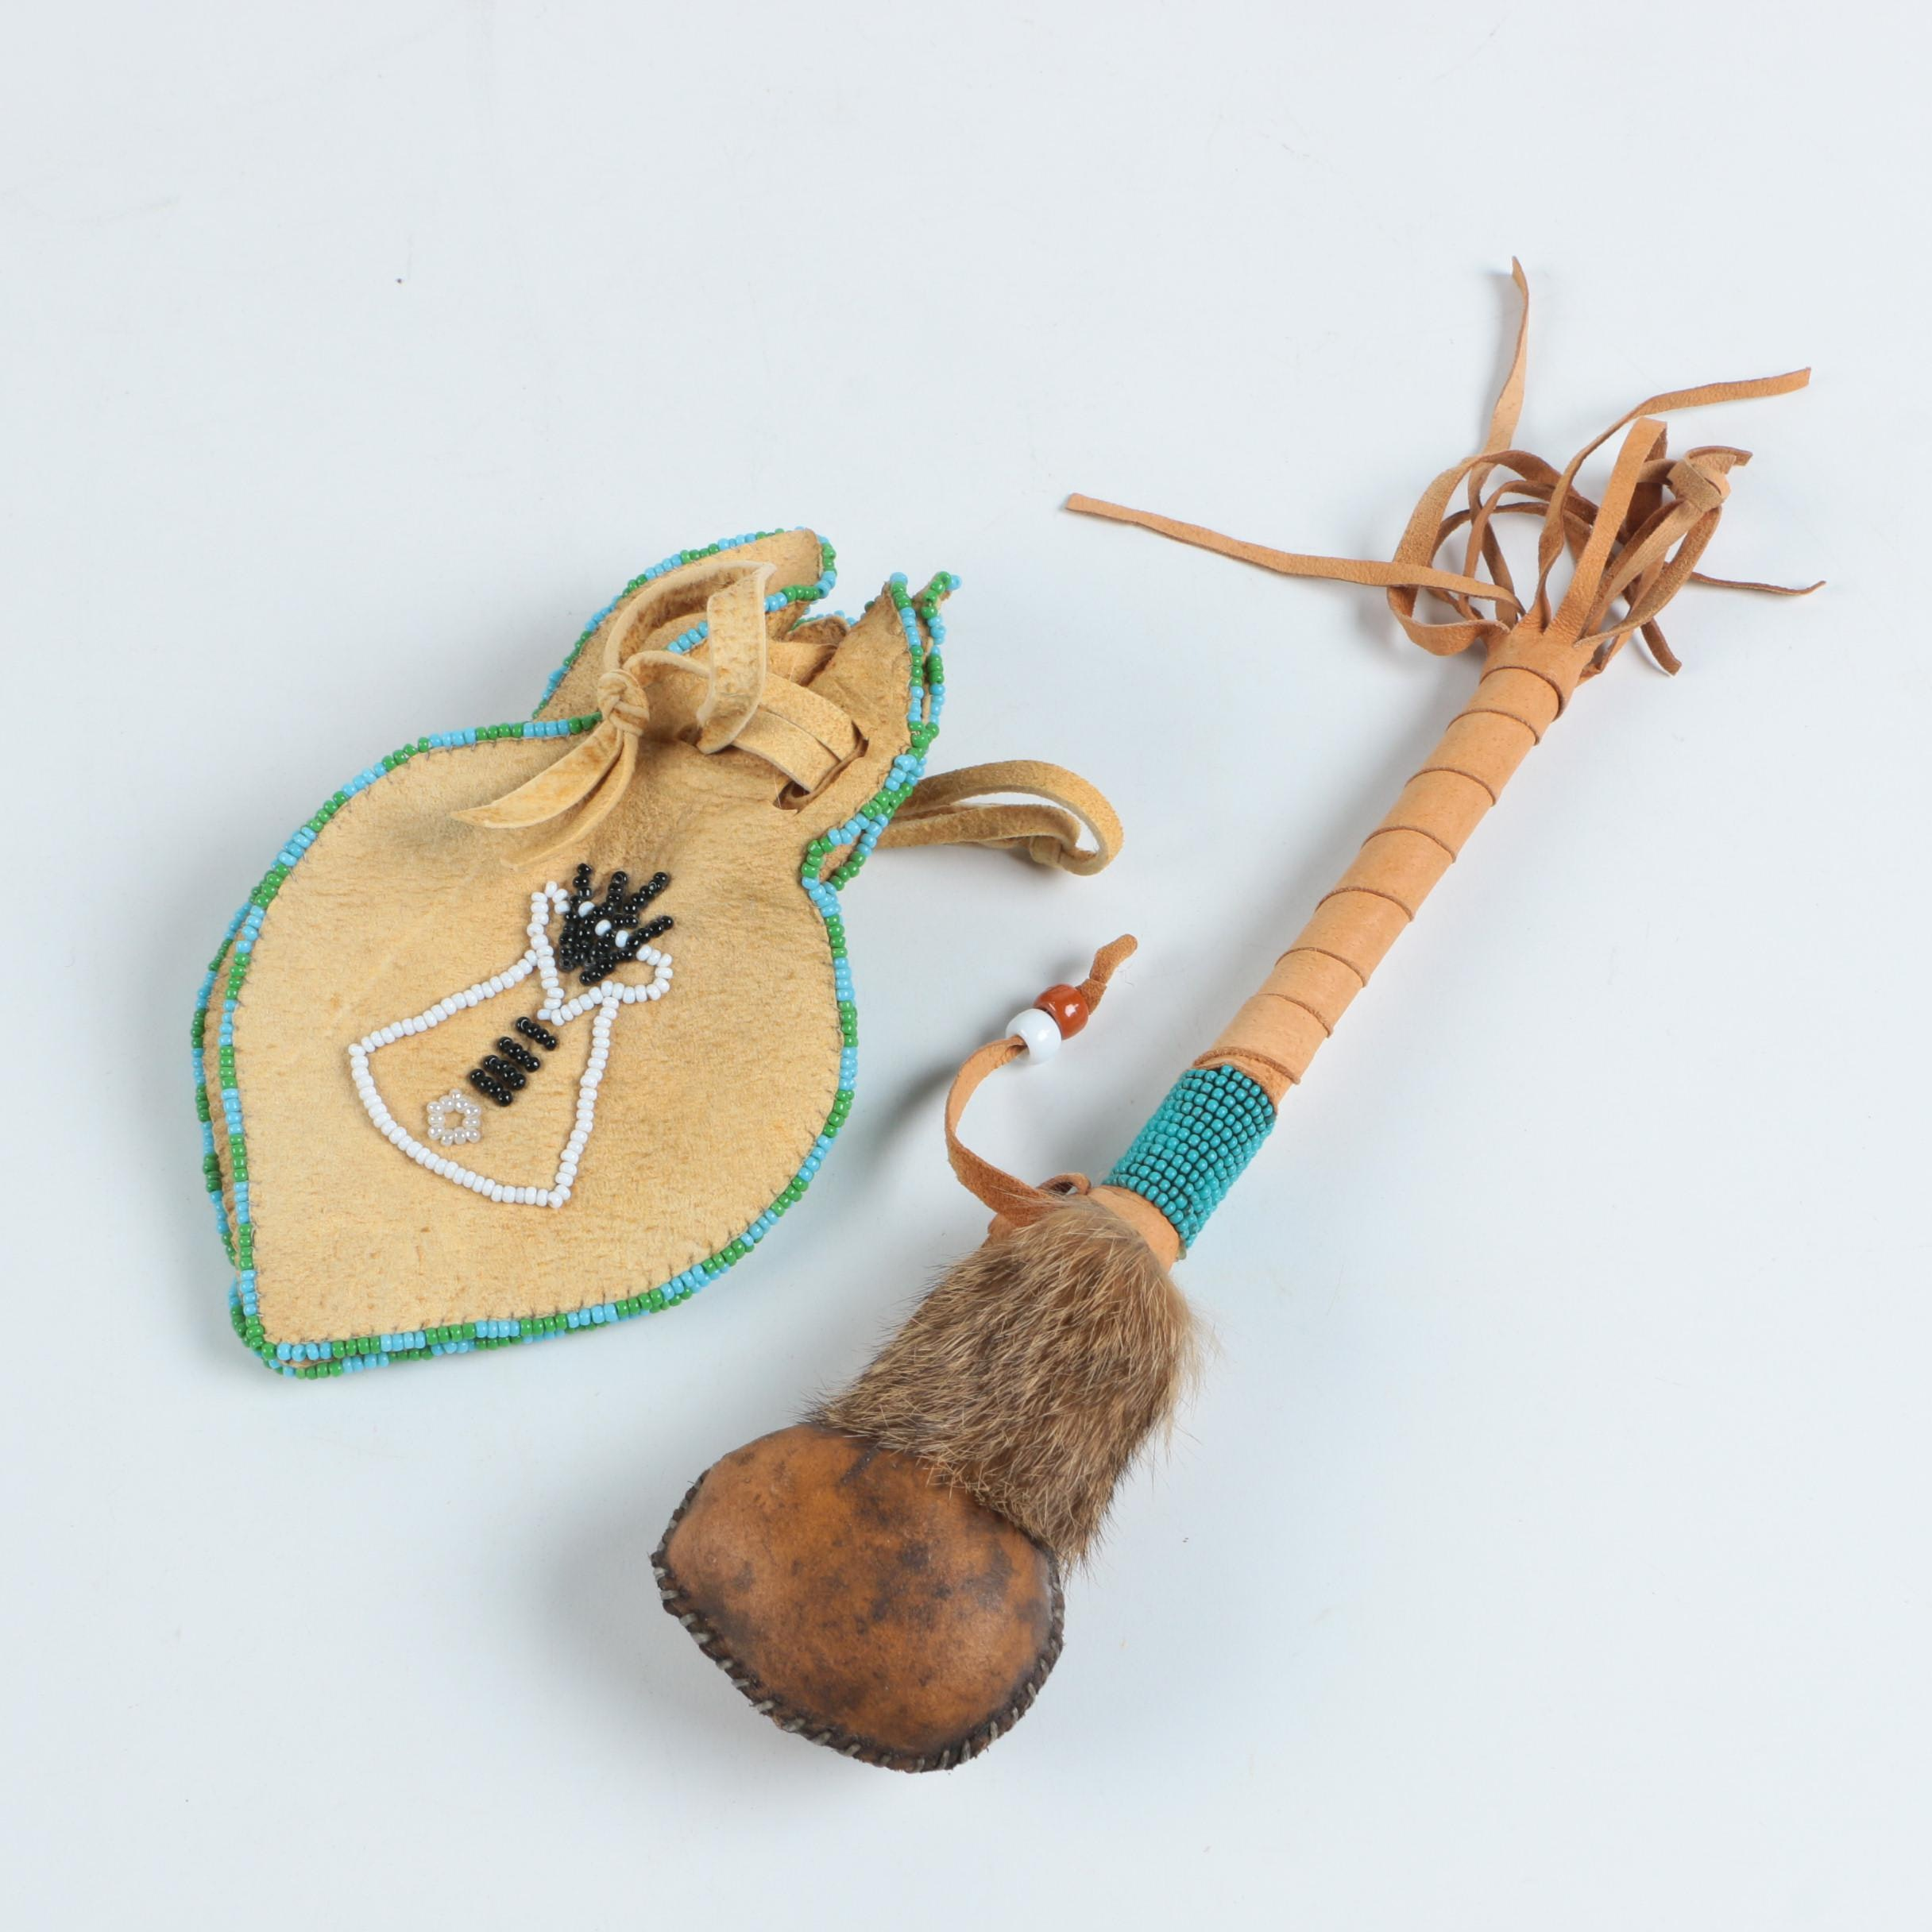 Lakota Dance Rattle with Beaded Drawstring Leather Pouch